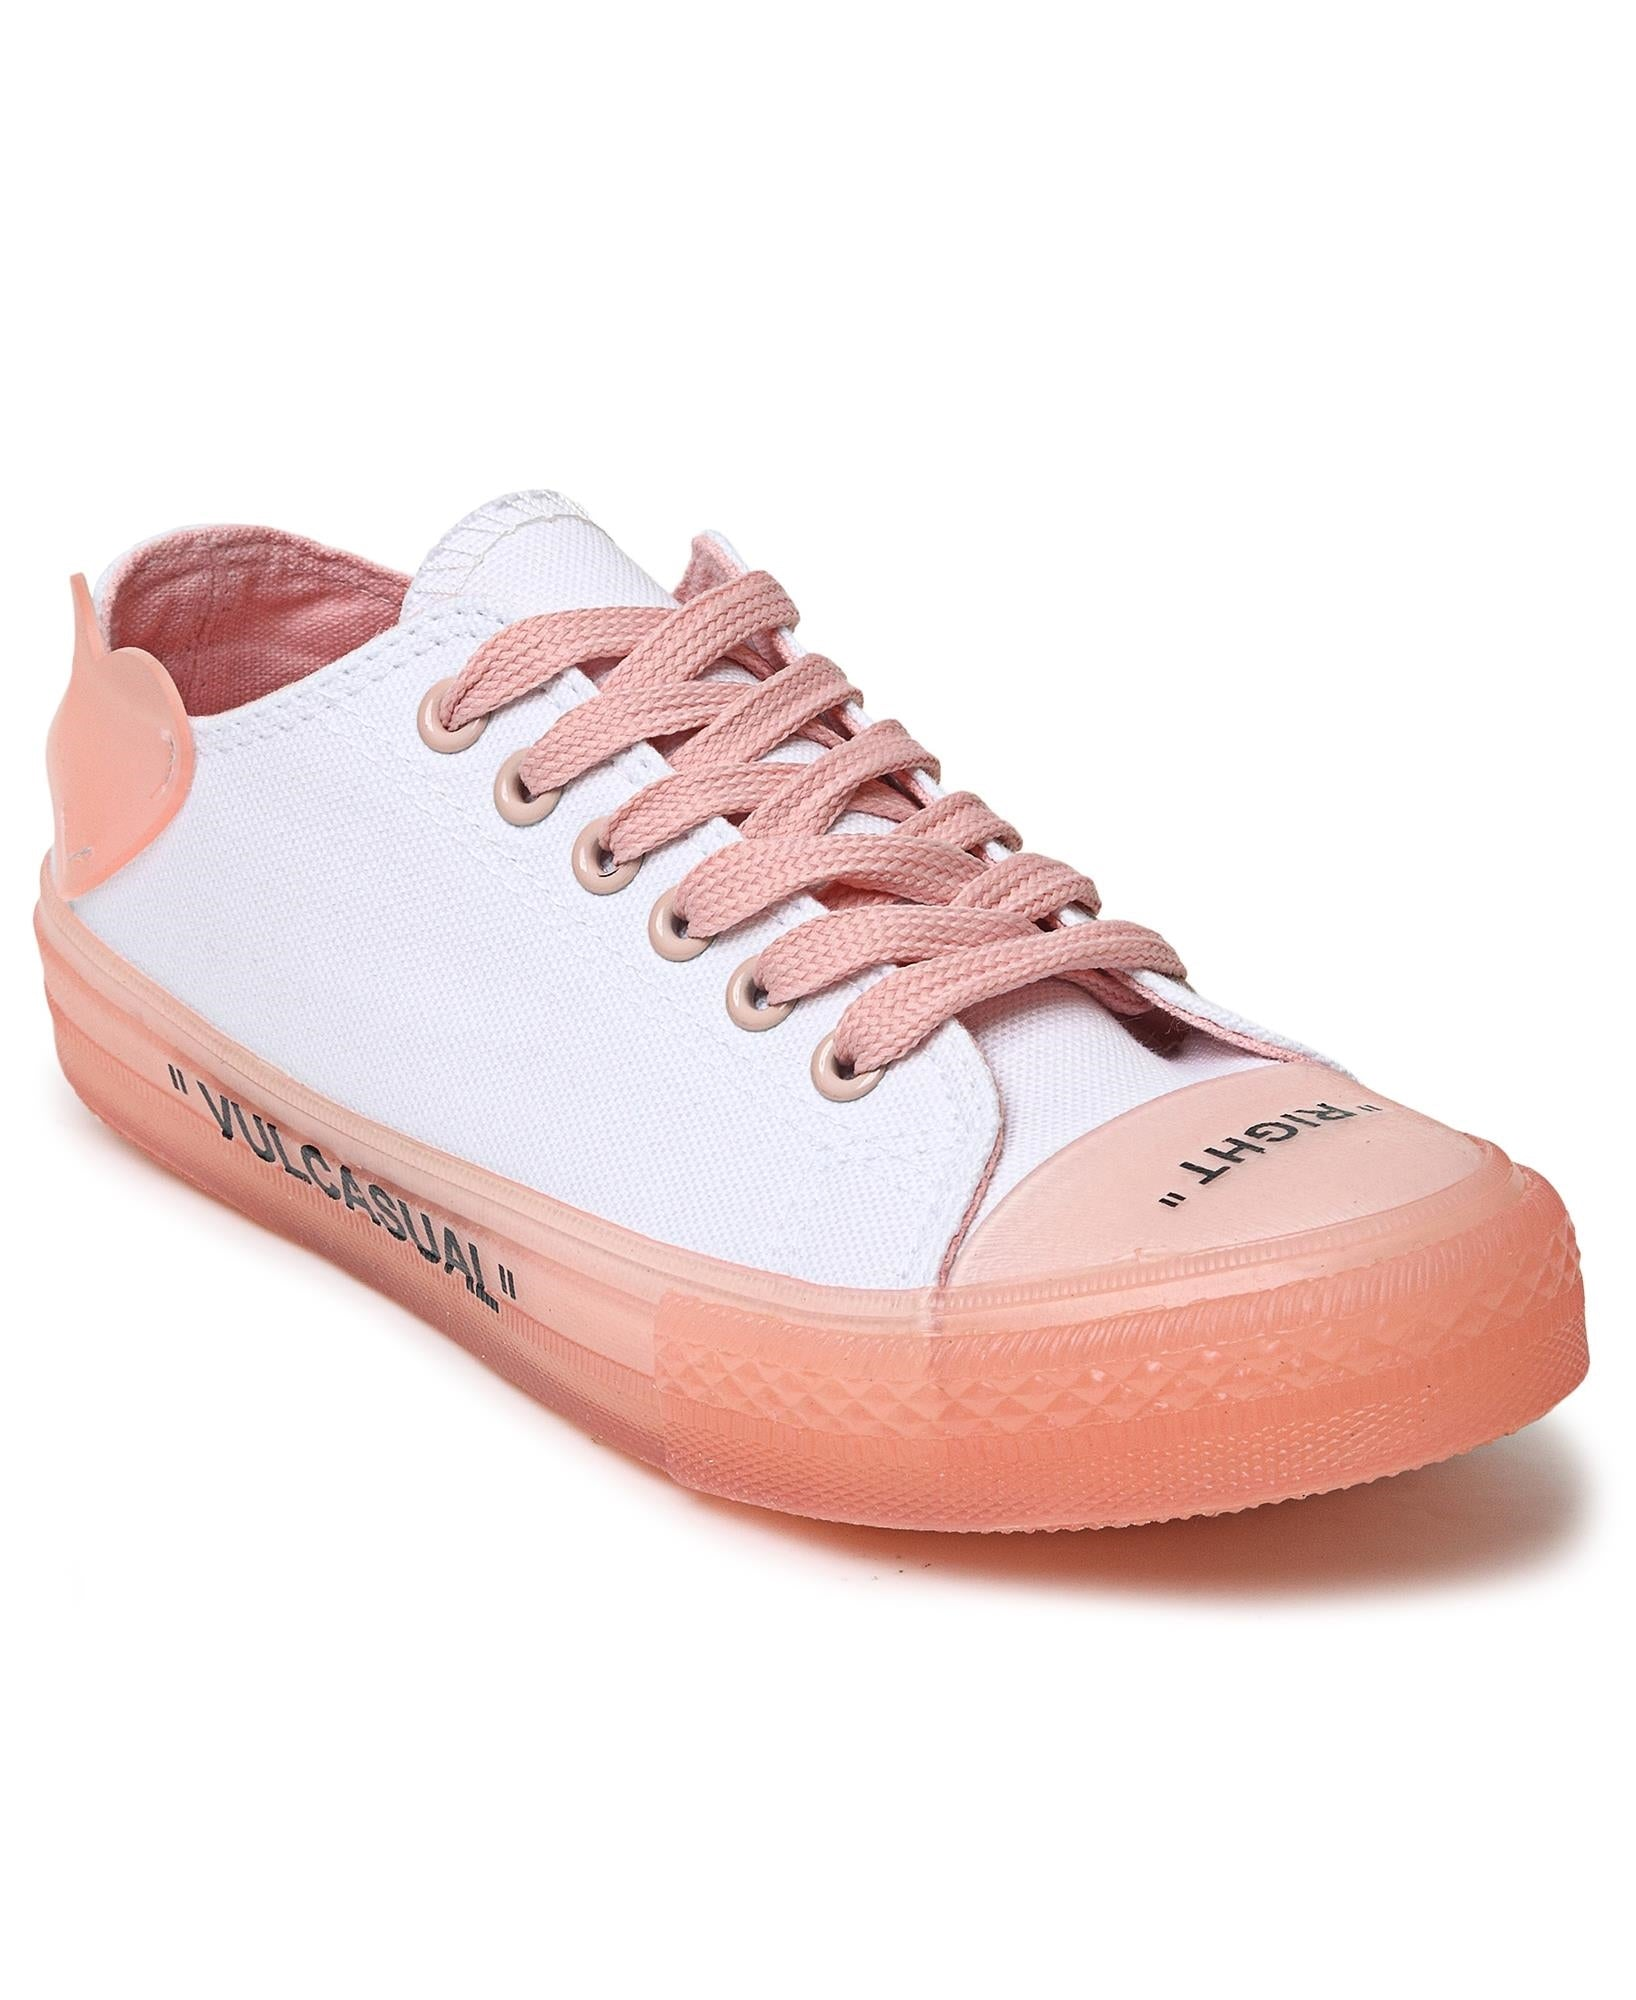 Ladies' Casual Sneakers - Orange